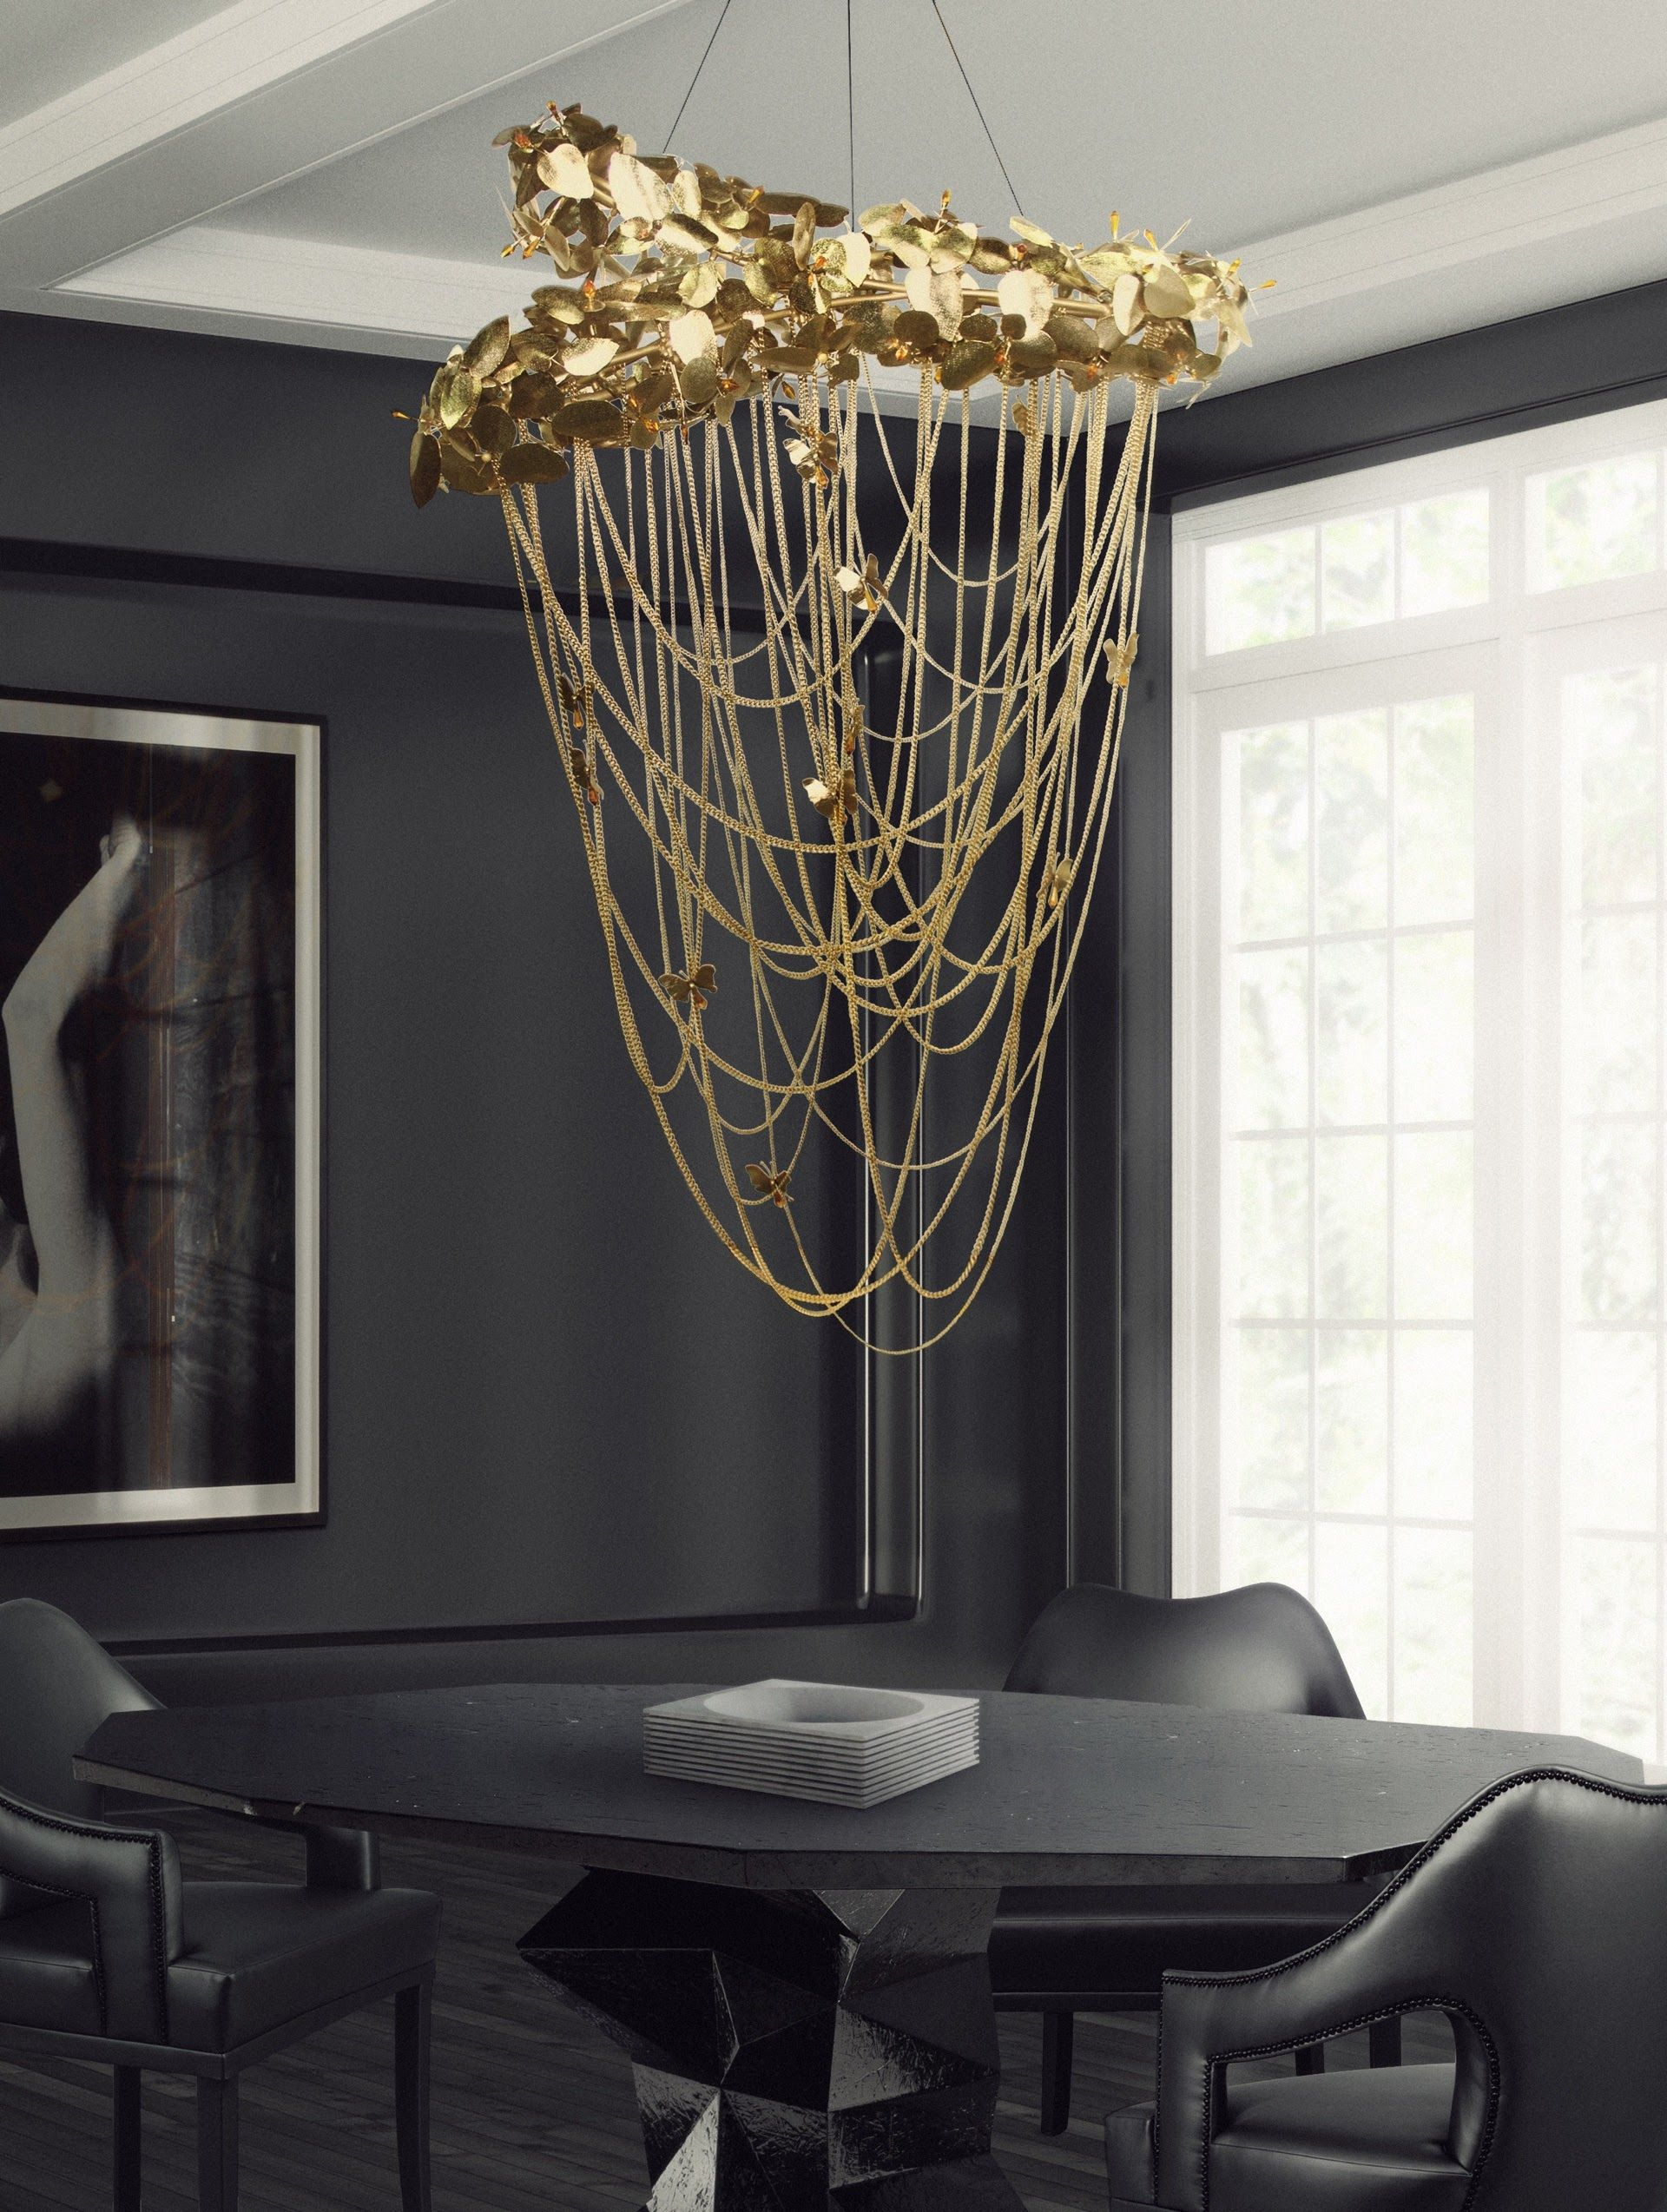 Working On An Dining Room Lighting Project? Find Out The Best Inspirations  For Your Next